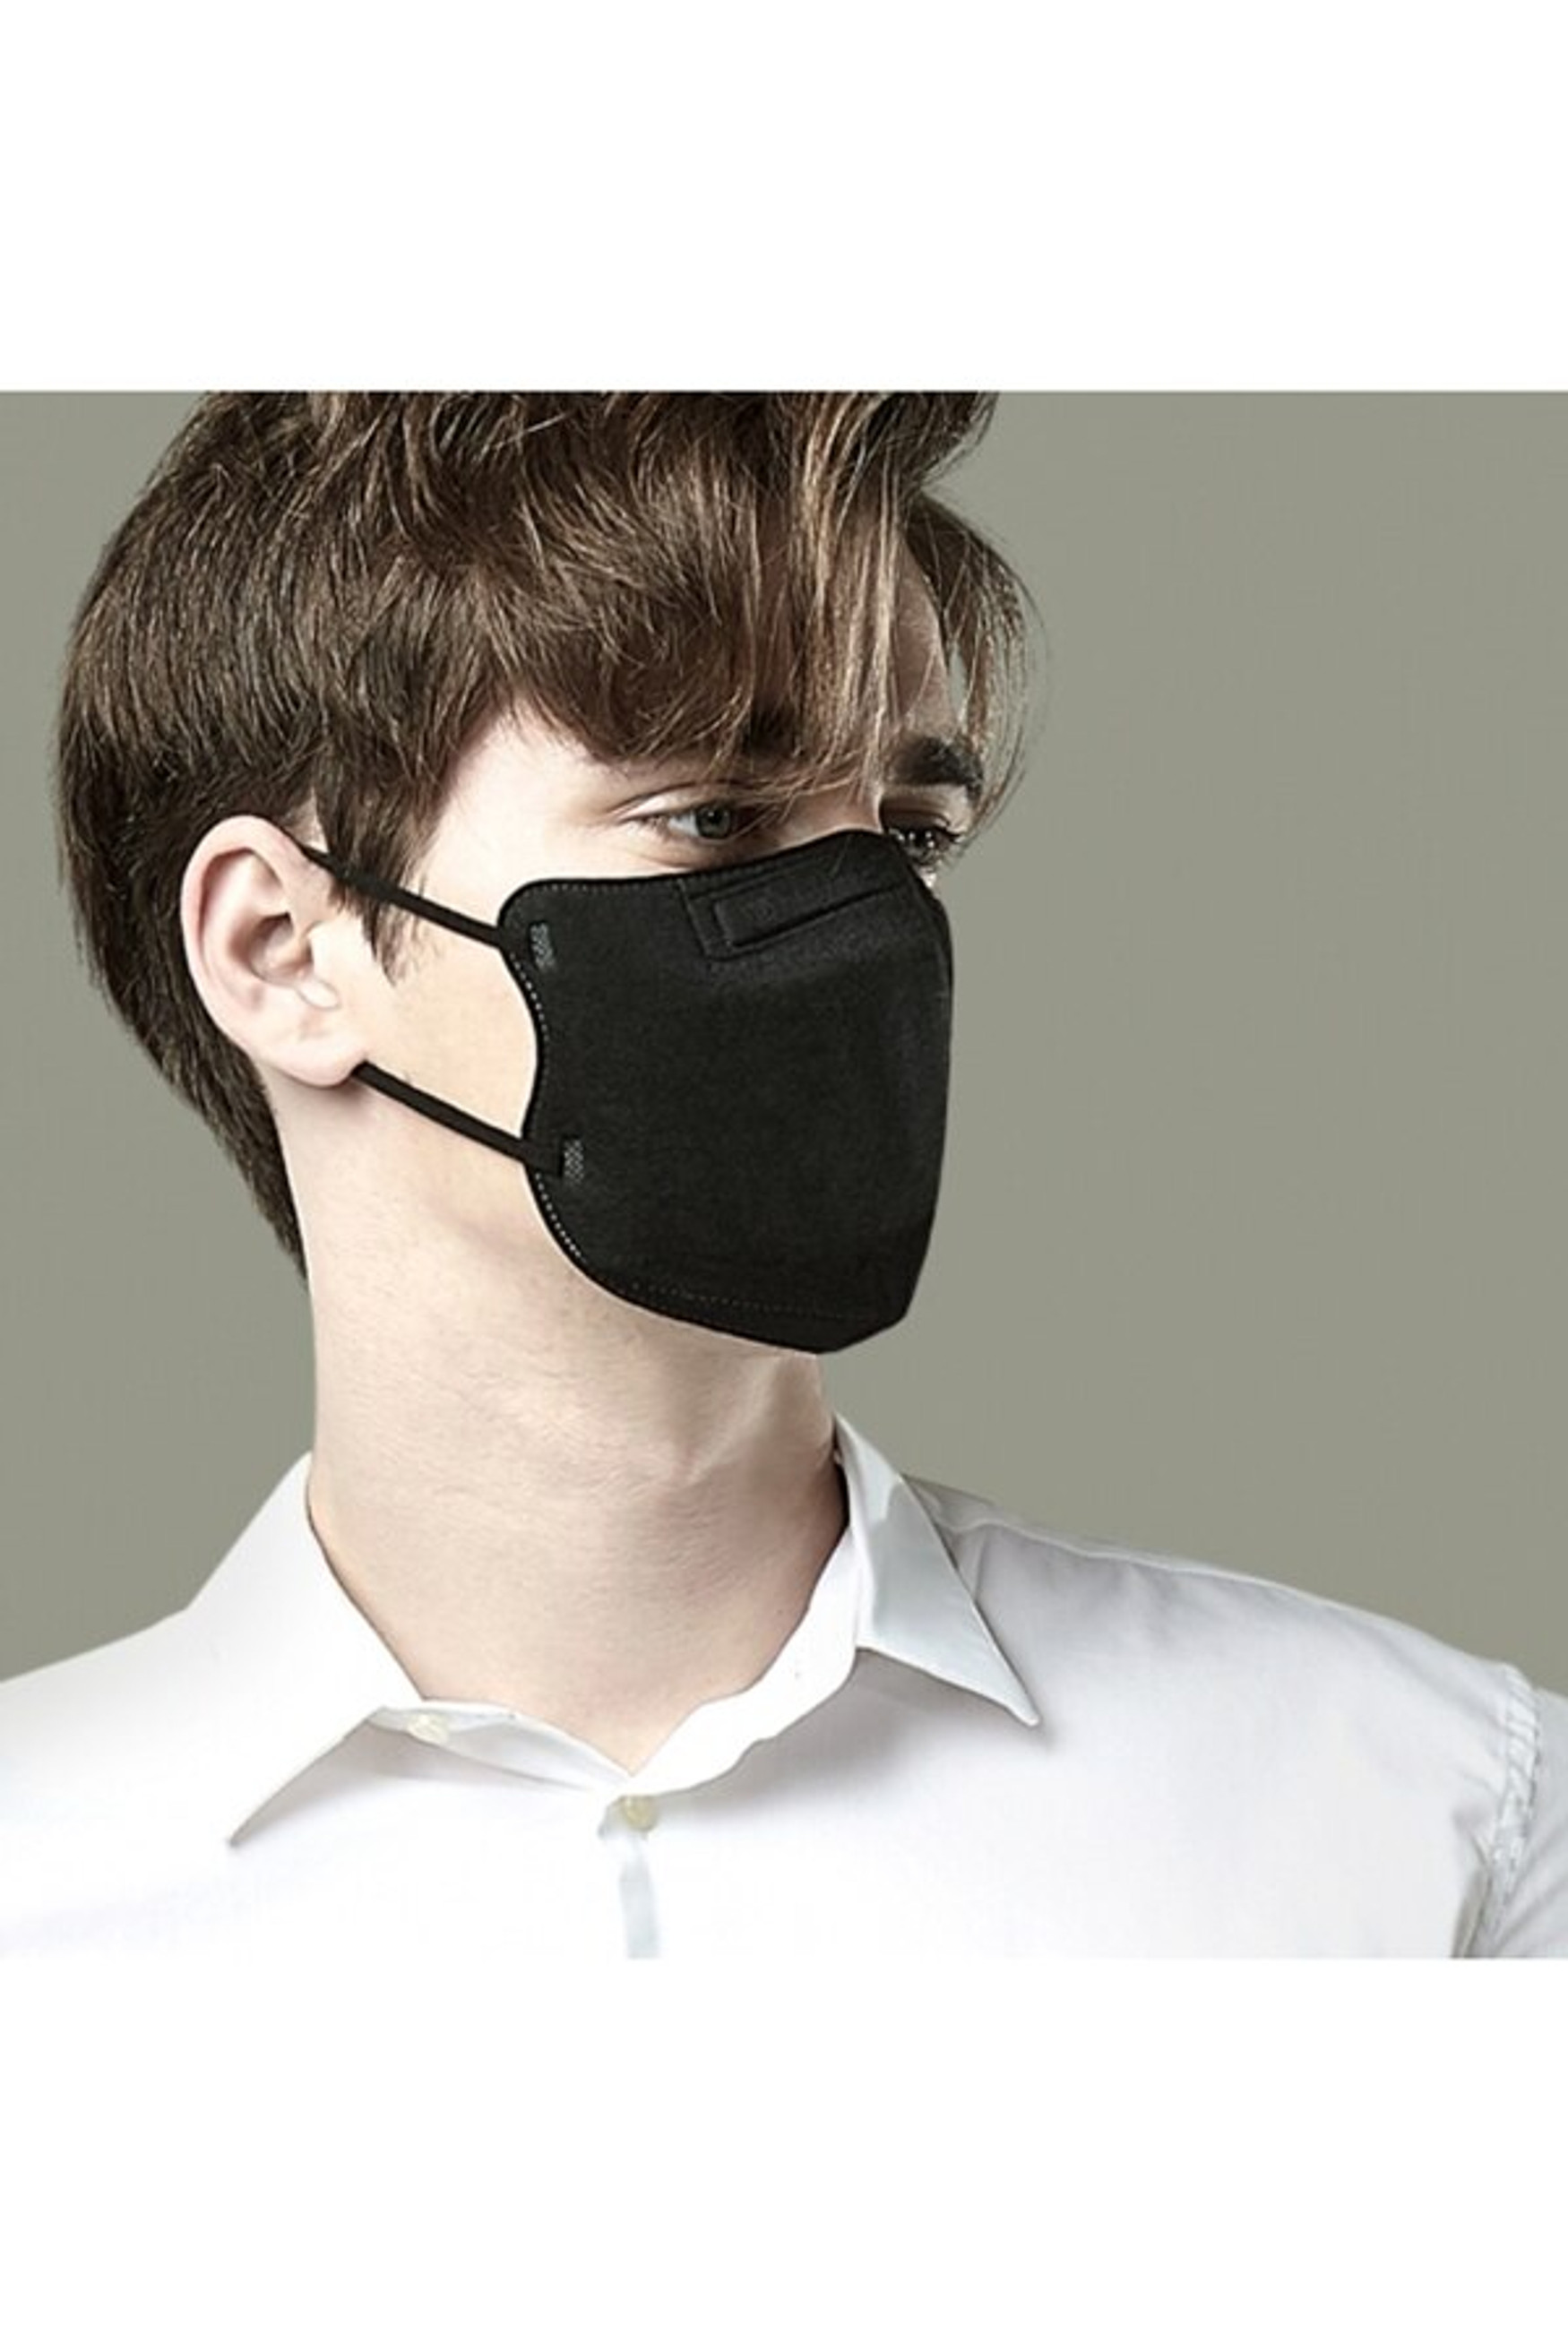 Black Oral Filtration Face Mask - SINGLES - INDIVIDUALLY WRAPPED